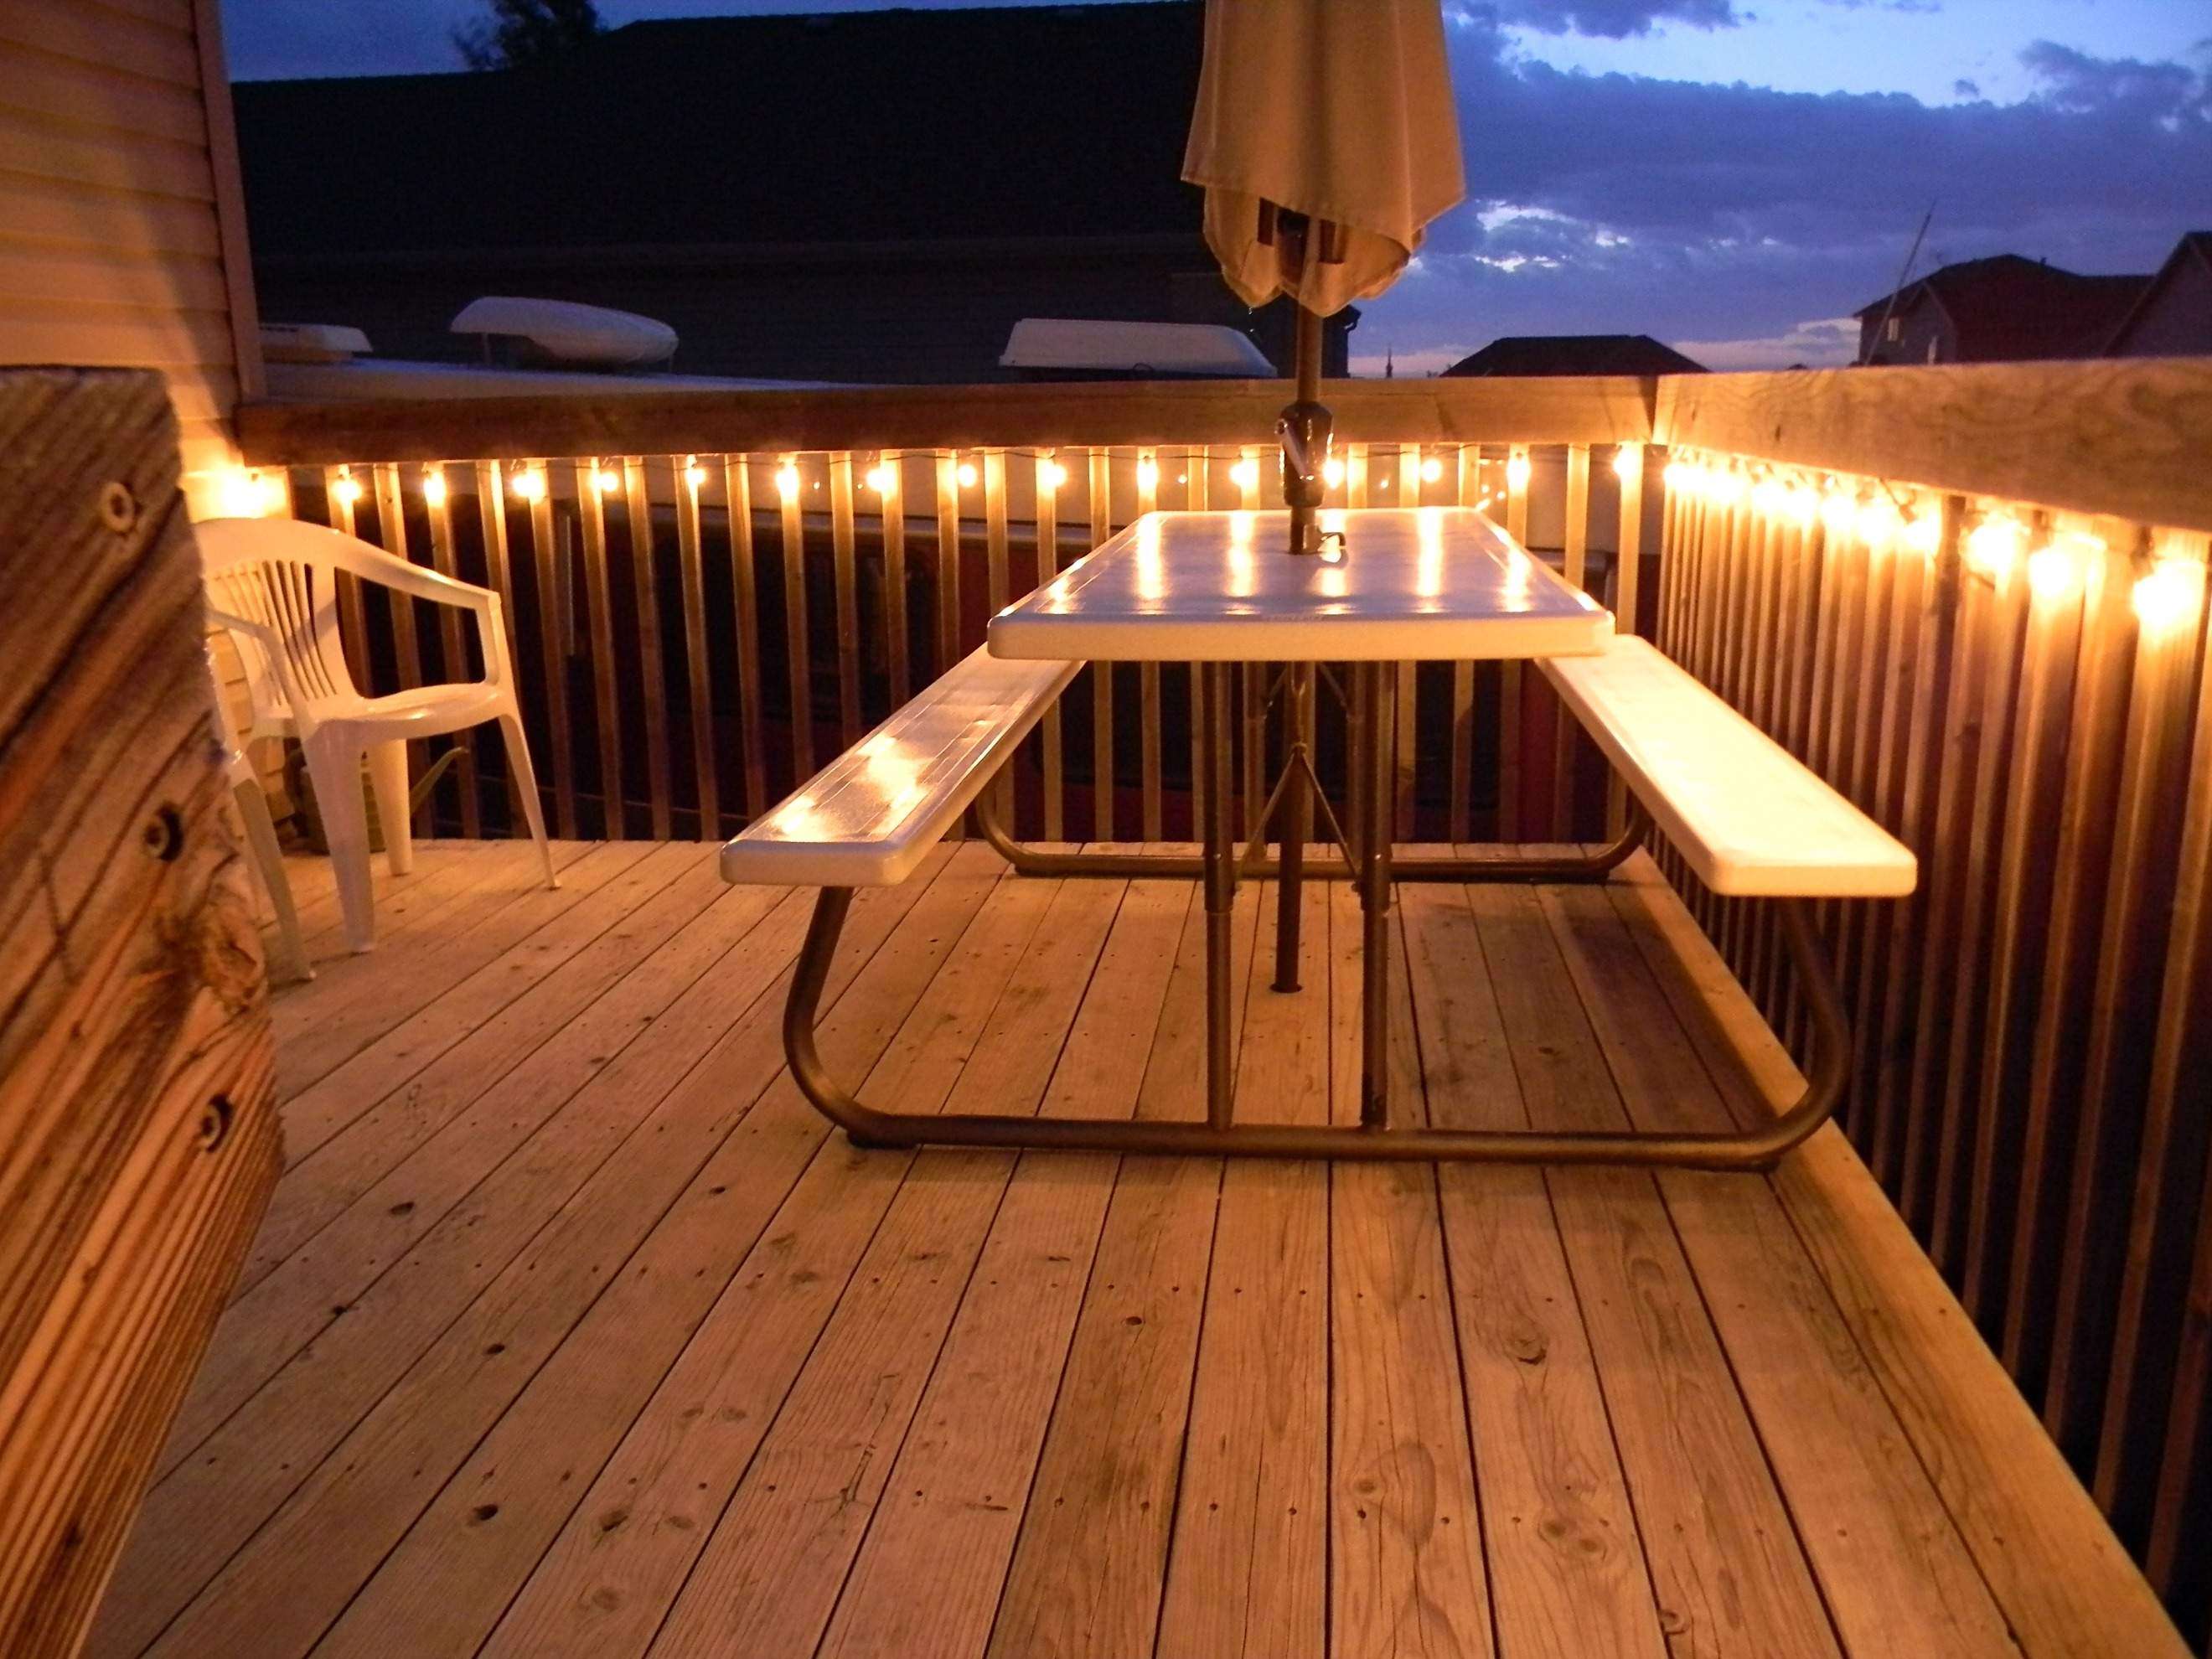 2018 Garden Ideas : Low Voltage Deck Lighting Ideas Some Tips To Get The Within Modern Low Voltage Deck Lighting (View 1 of 20)